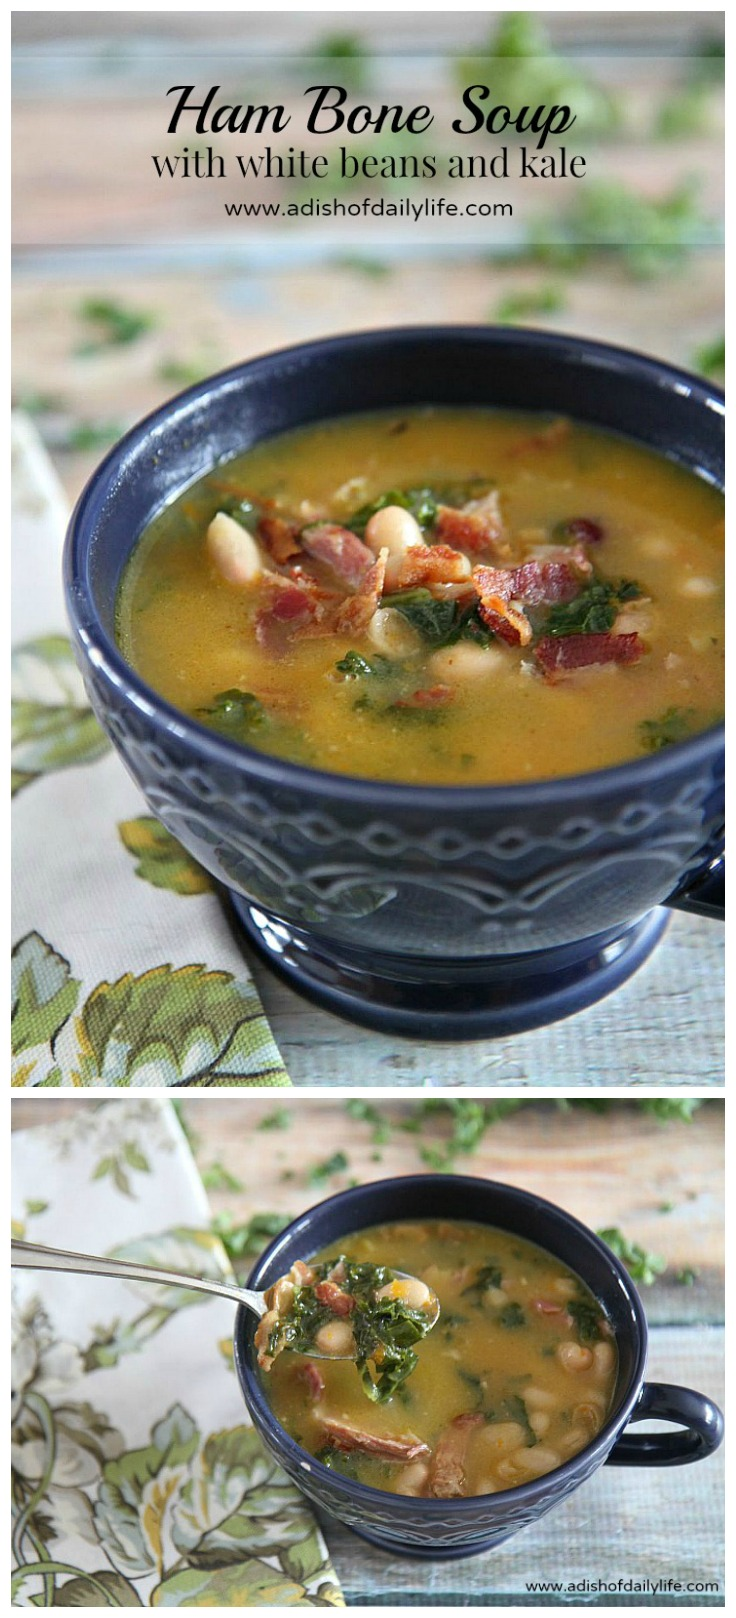 Rich in flavor, this hearty ham bone soup with white beans and kale is the perfect comfort food to warm your bones on a chilly or damp and rainy day. Great way to use up your leftover Christmas or Easter ham bone as well!